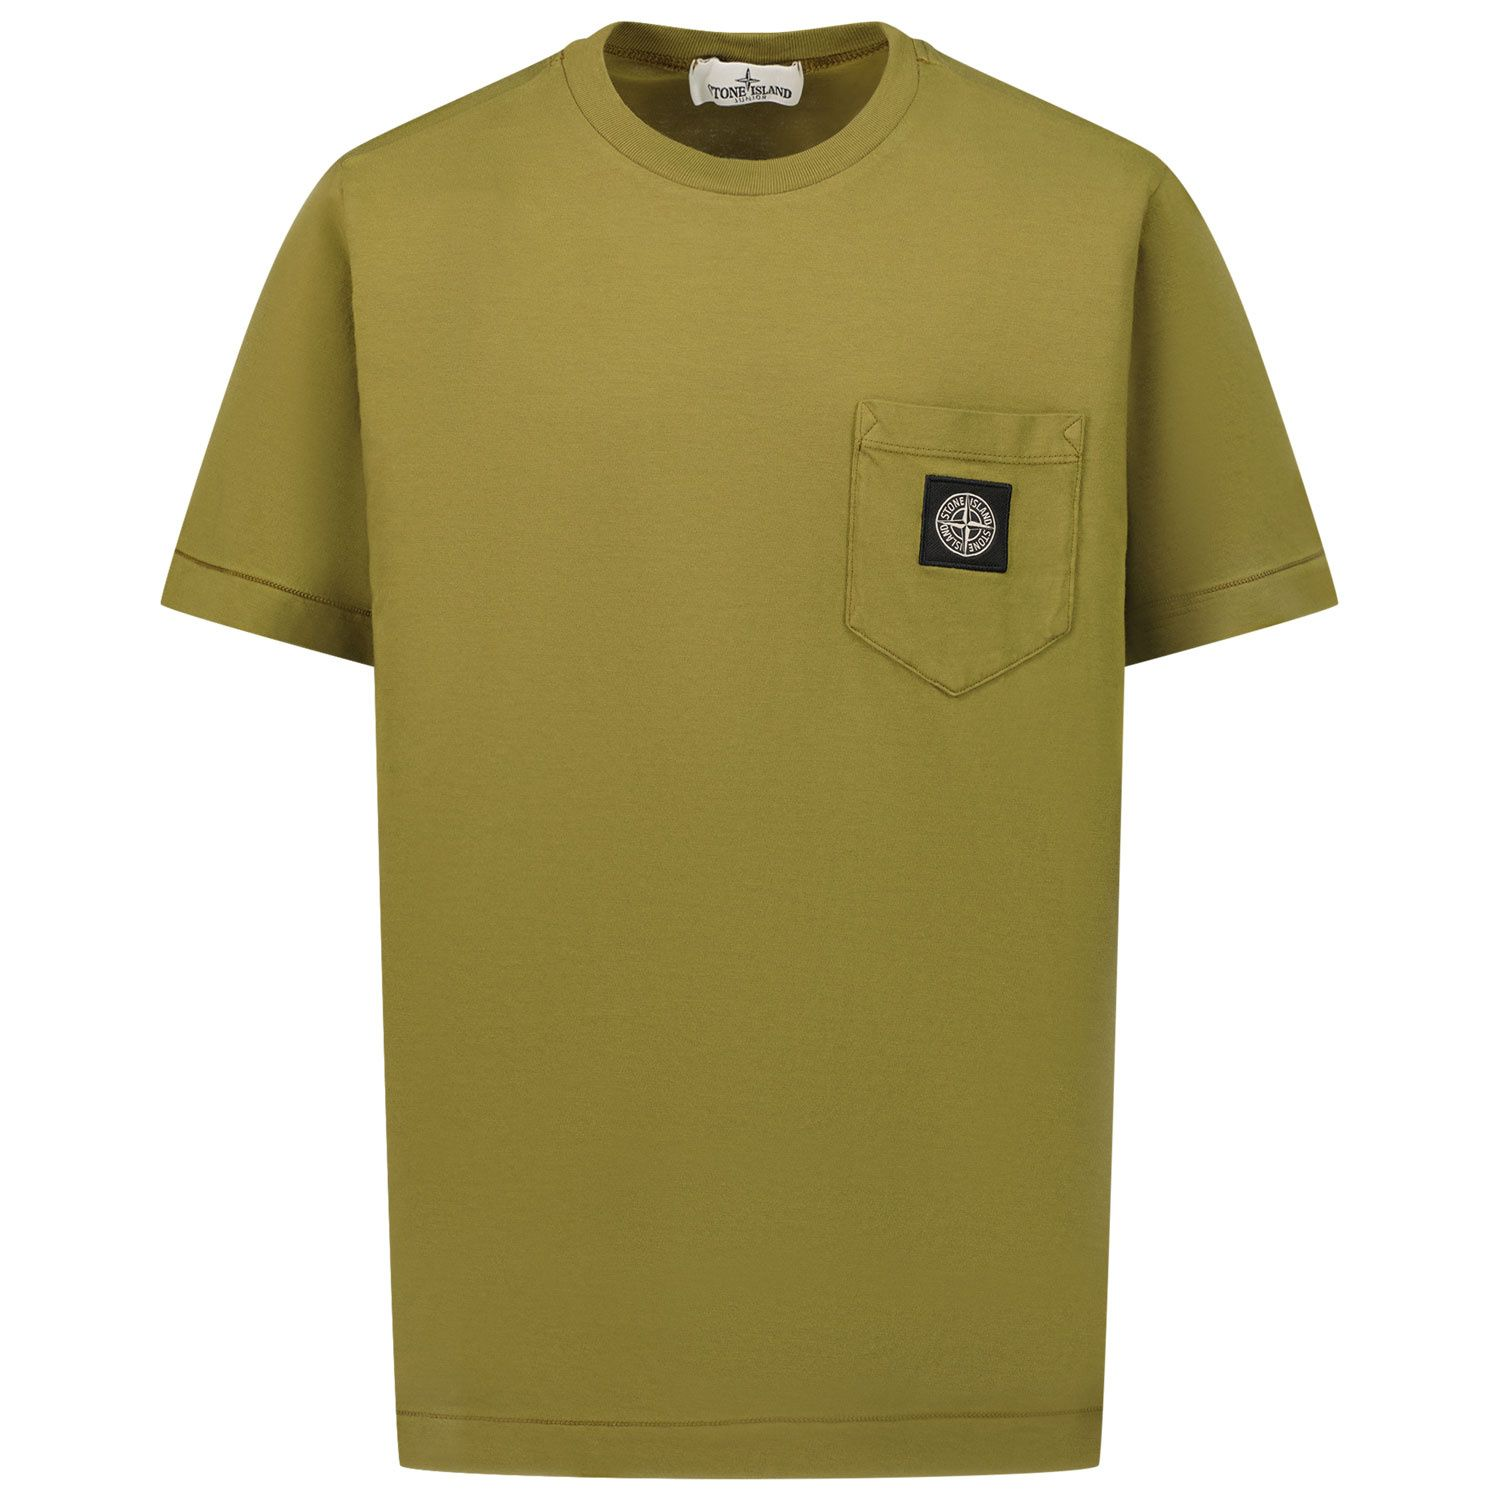 Picture of Stone Island 20347 kids t-shirt olive green